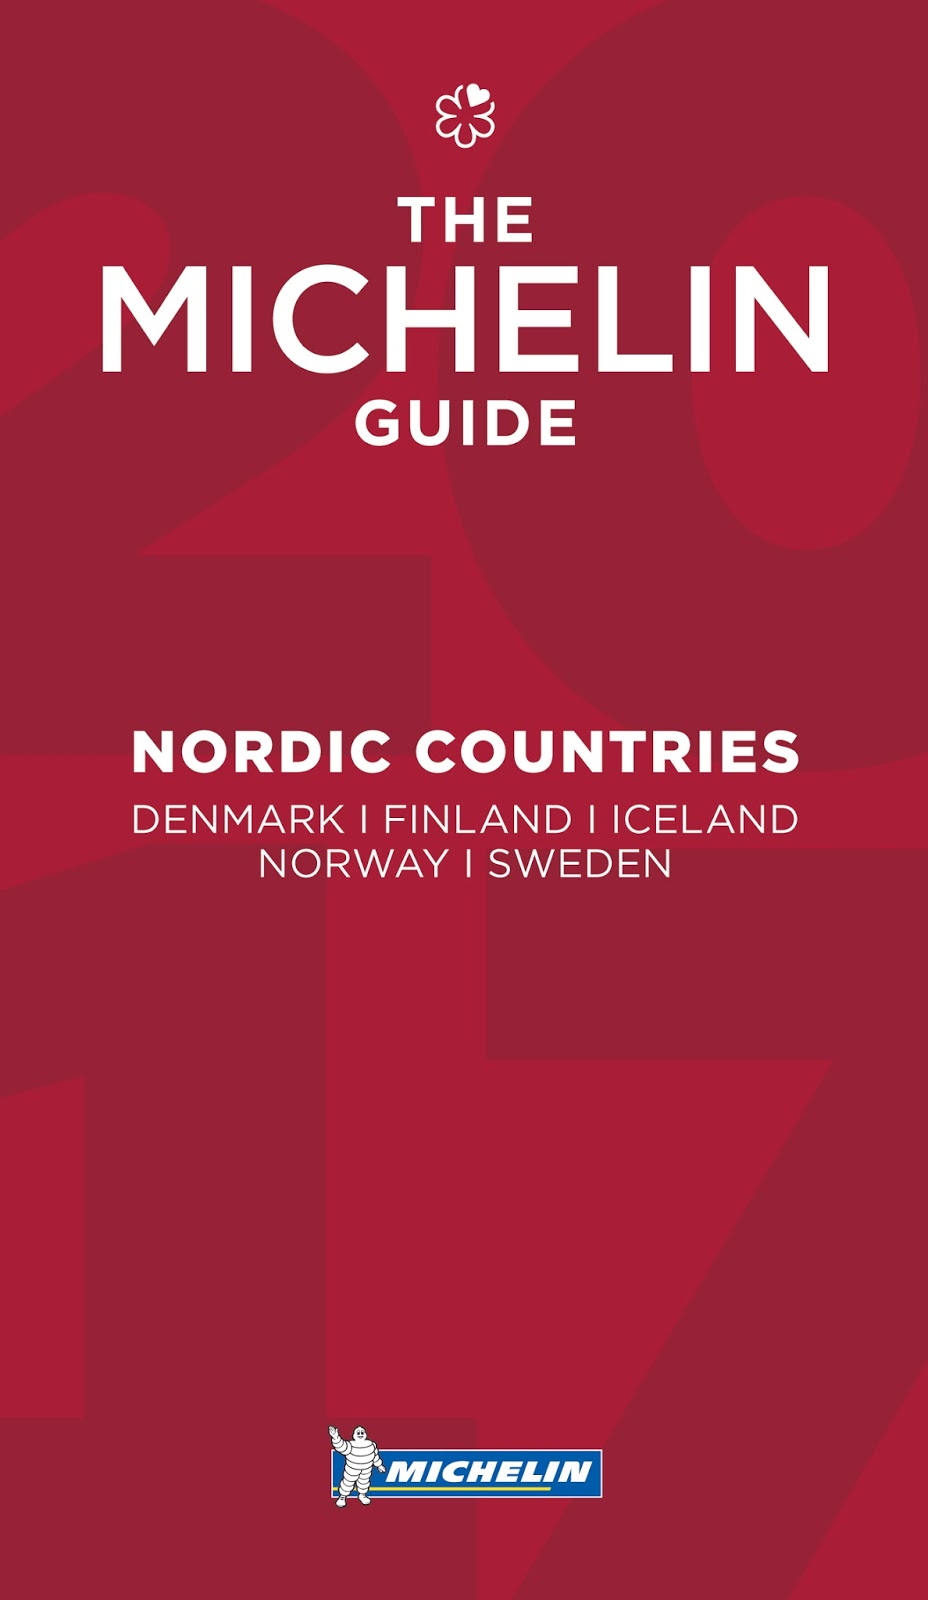 Stockholm Michelin Restaurants - the Michelin Guide ...